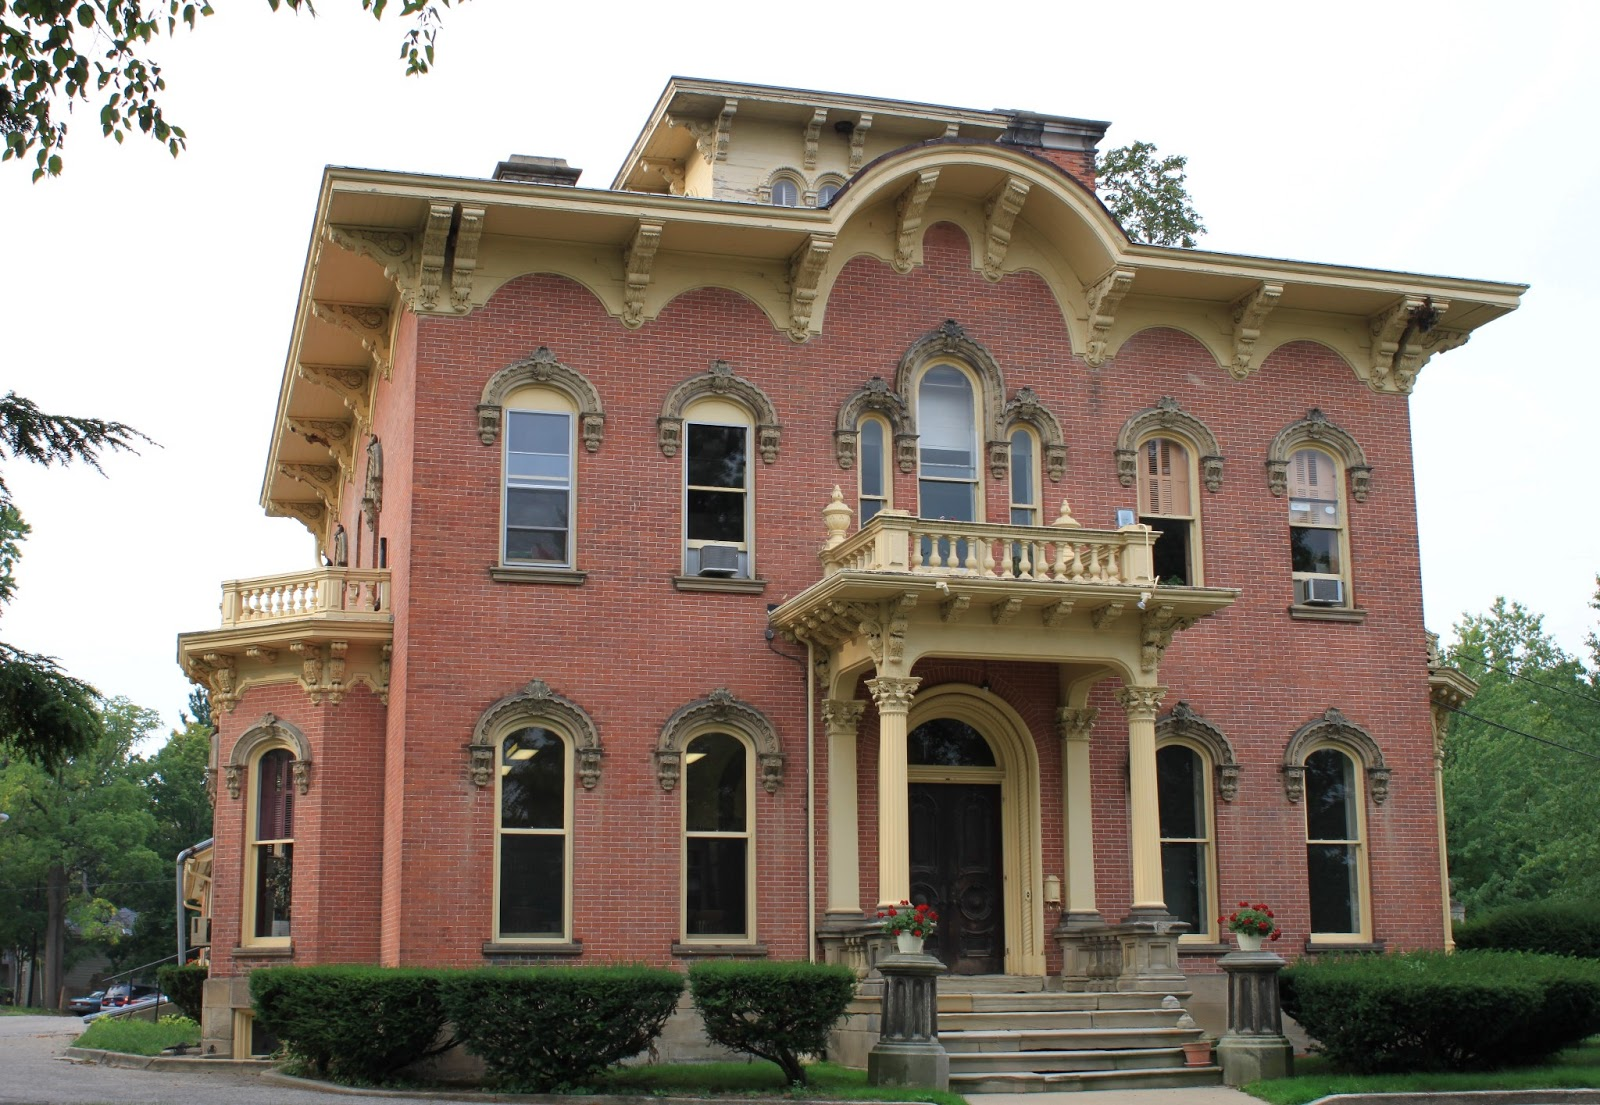 The Picturesque Style Italianate Architecture The George